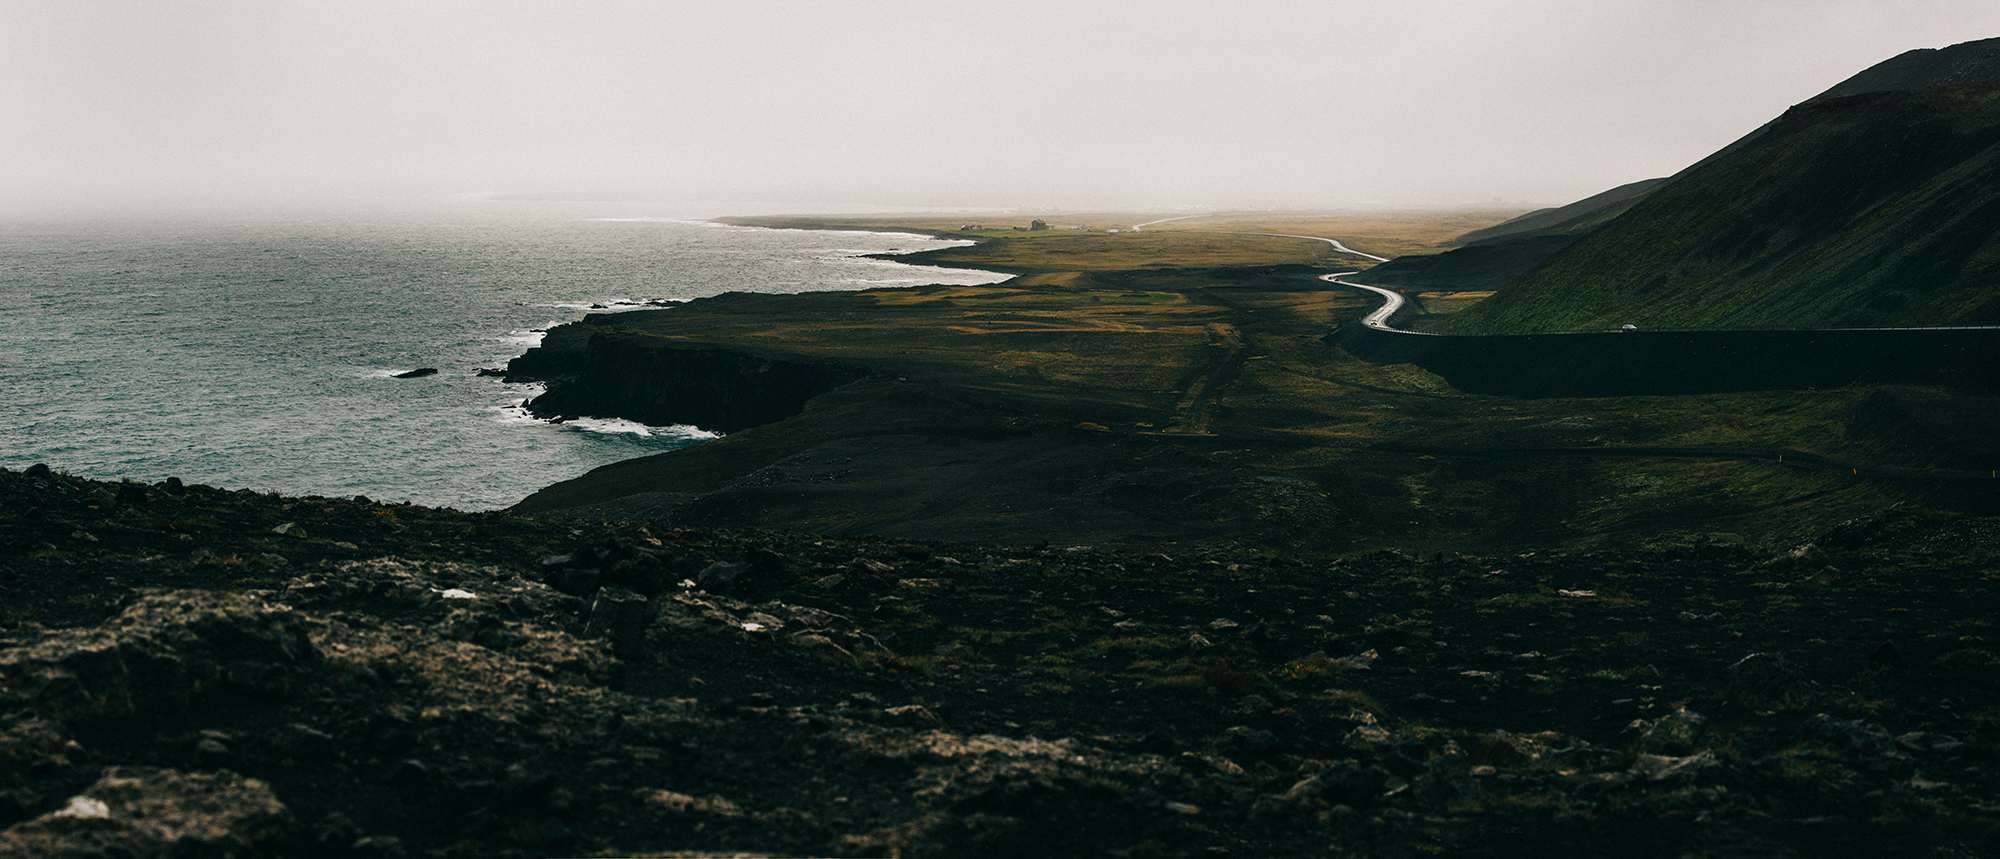 Moody Coast, route 427 not far from Grindavik.